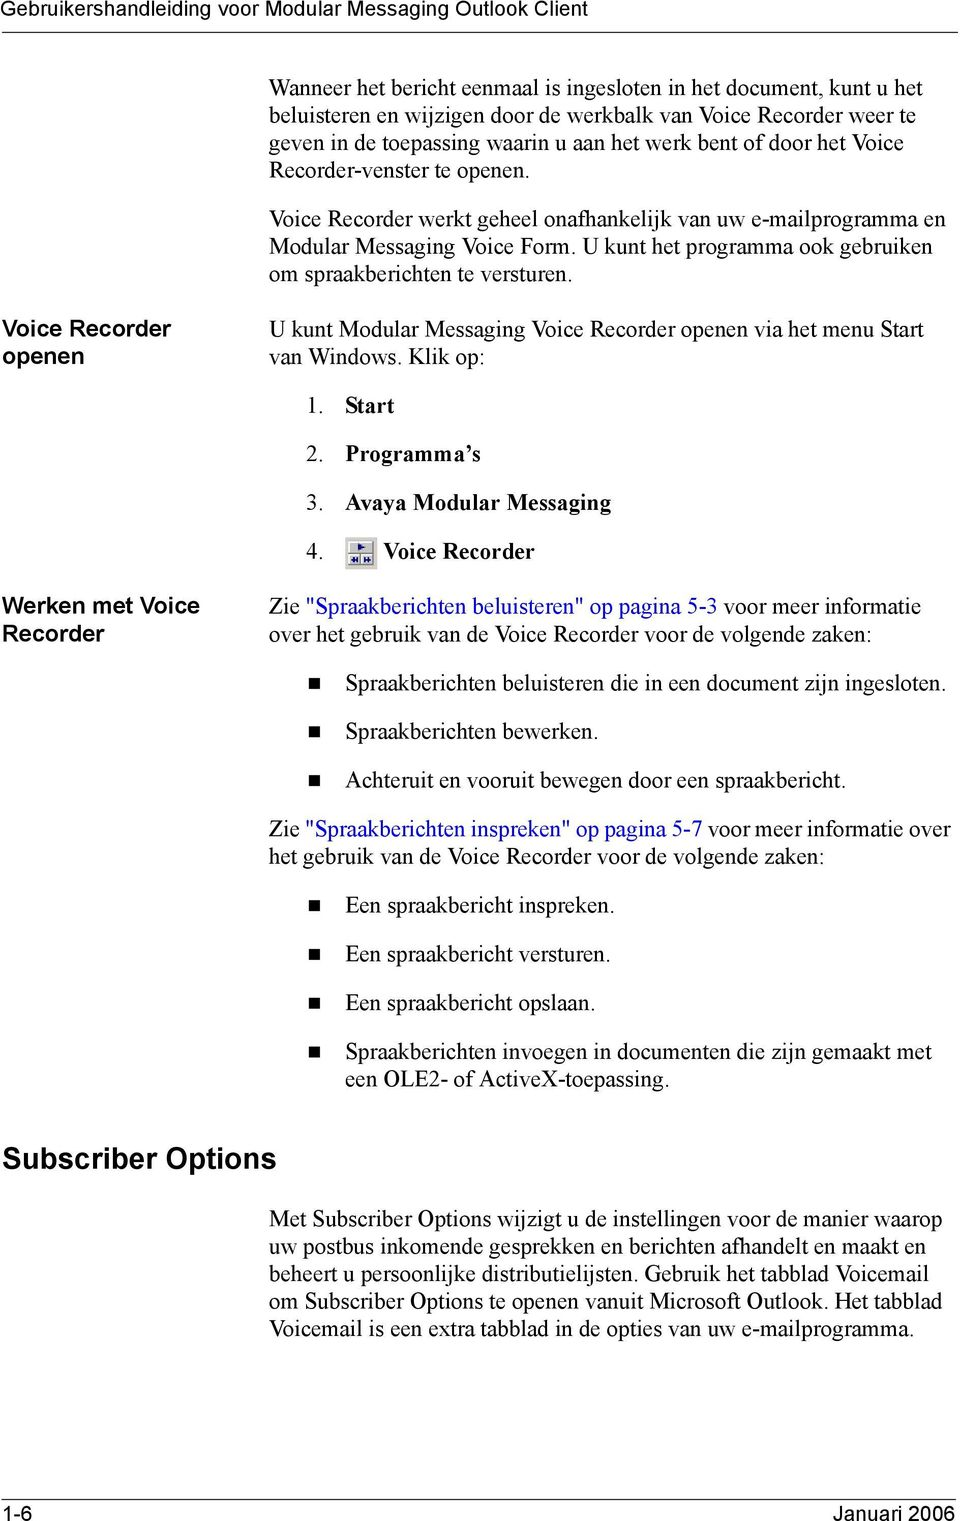 U kunt het programma ook gebruiken om spraakberichten te versturen. Voice Recorder openen U kunt Modular Messaging Voice Recorder openen via het menu Start van Windows. Klik op: 1. Start 2.